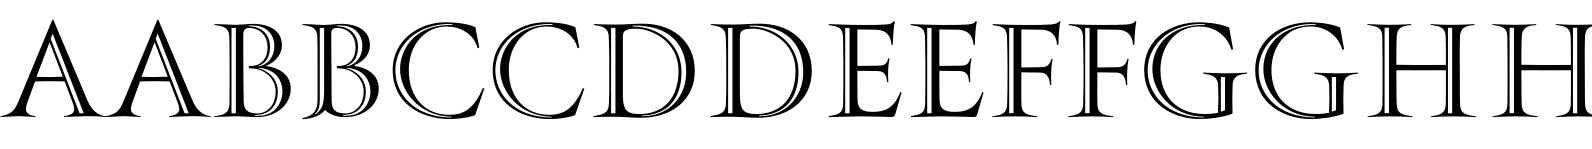 PFMonumentaPro Shaded Font